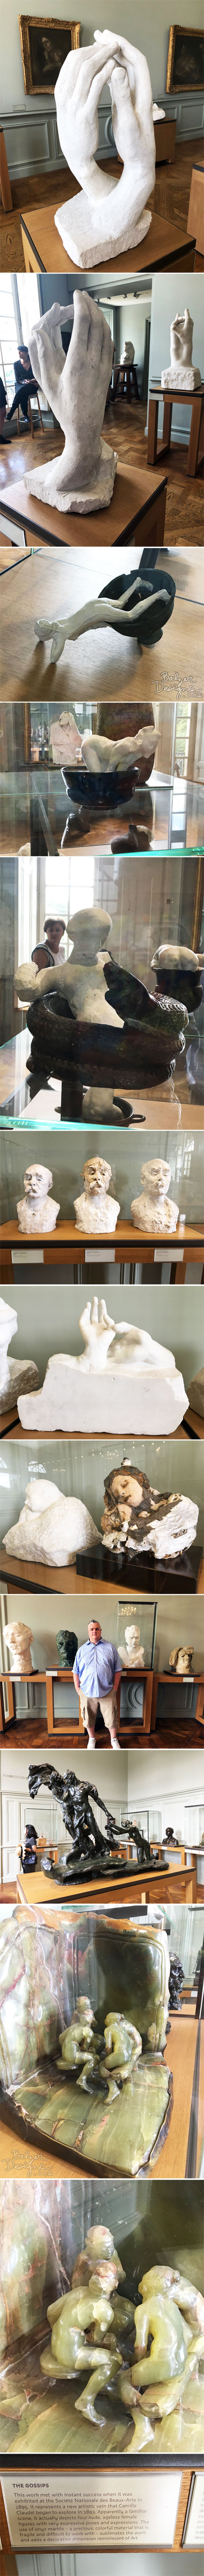 From the Balzer Designs Blog: Rodin Museum